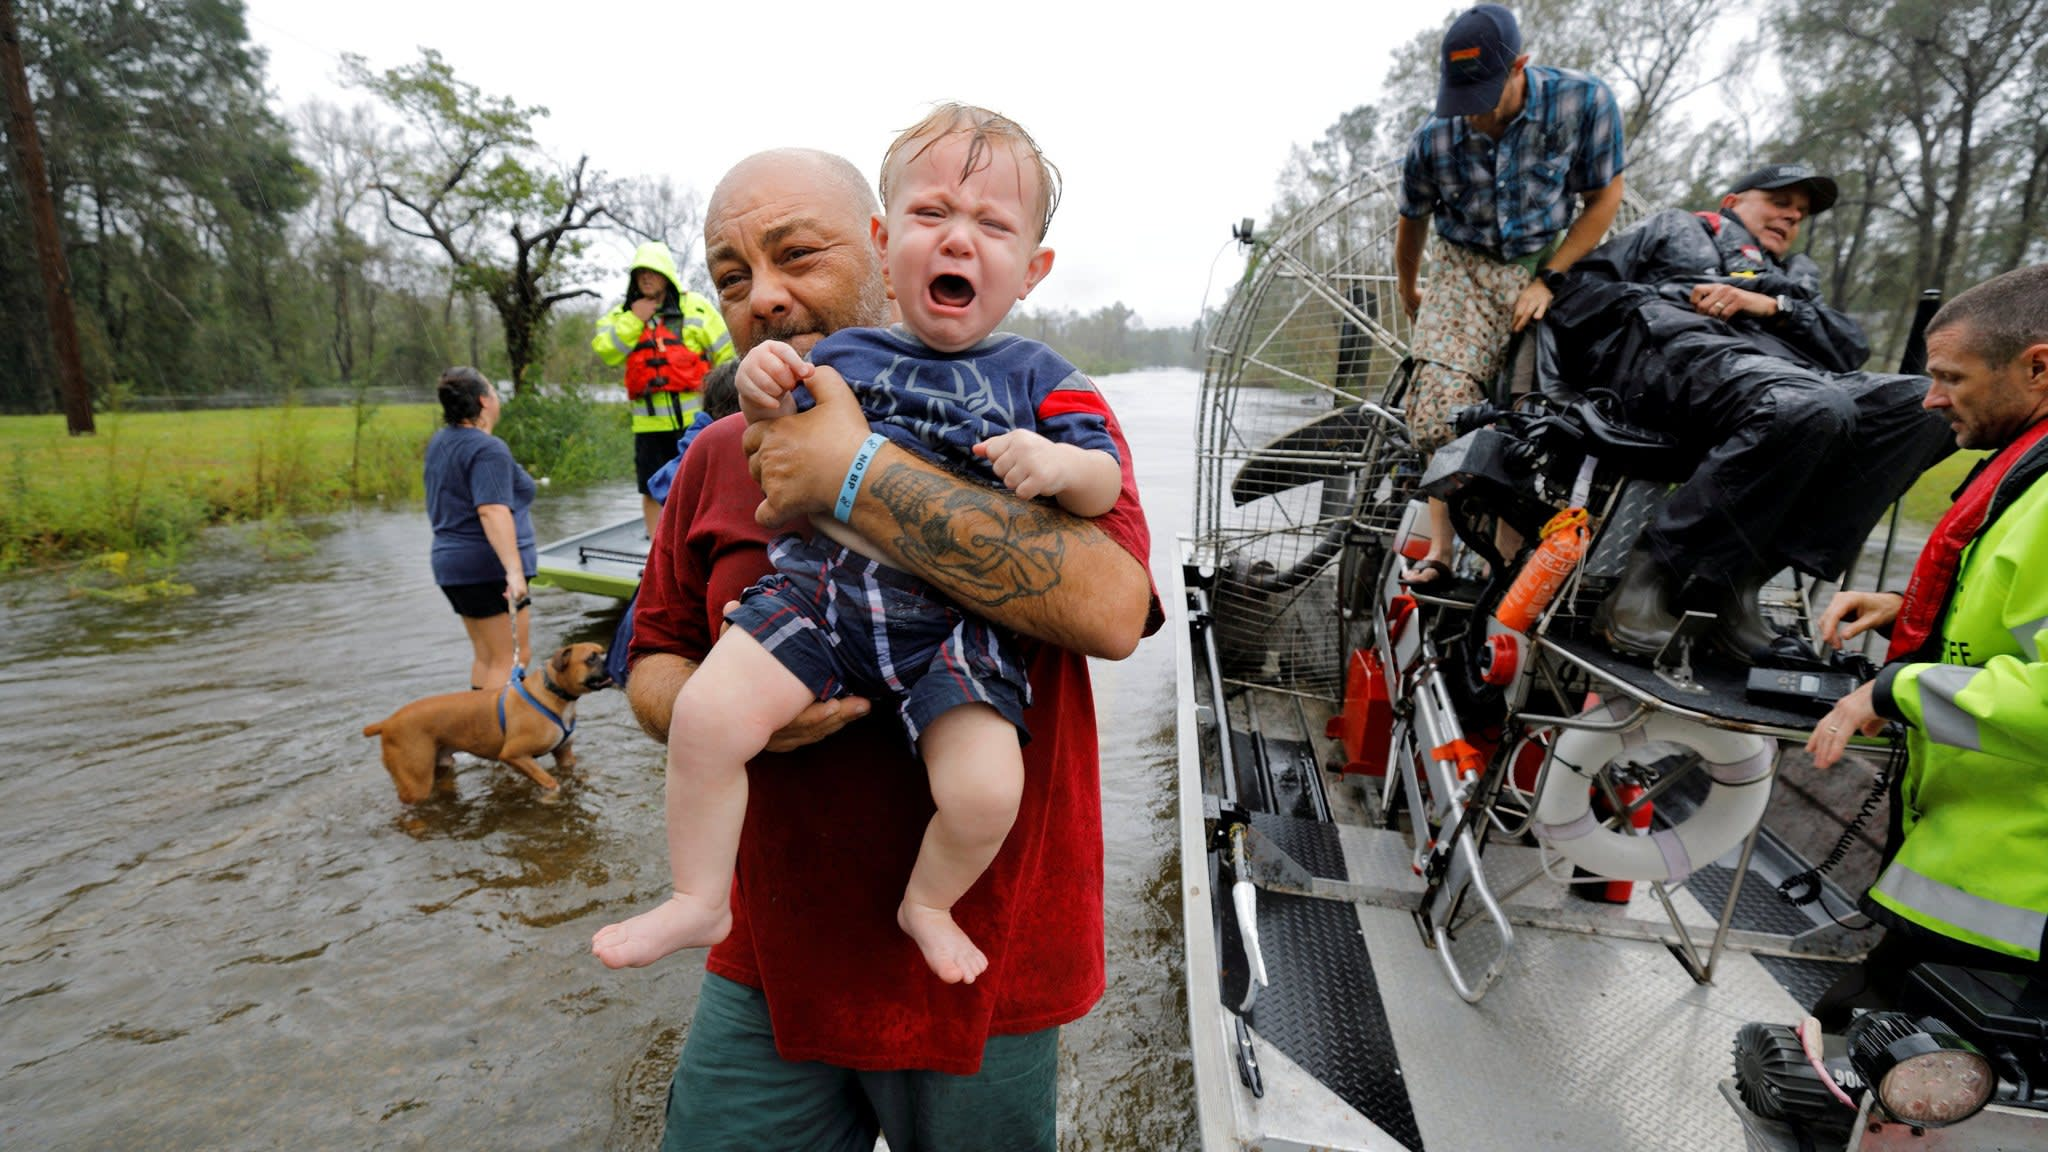 Storm Florence aftermath puts Trump on defensive